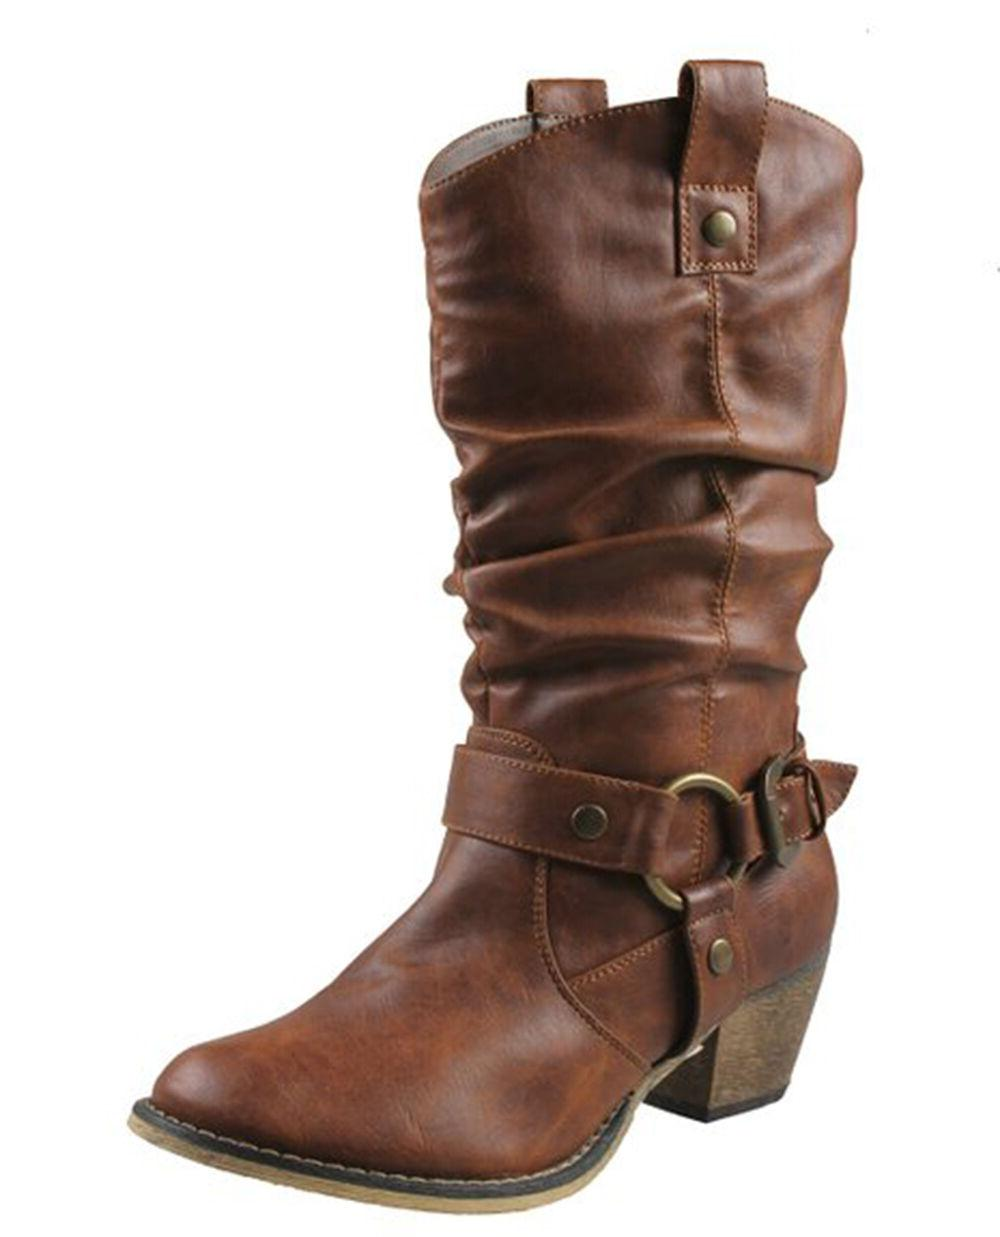 Women's Wild-02 Mid Calf Western Style Cowboy Boots